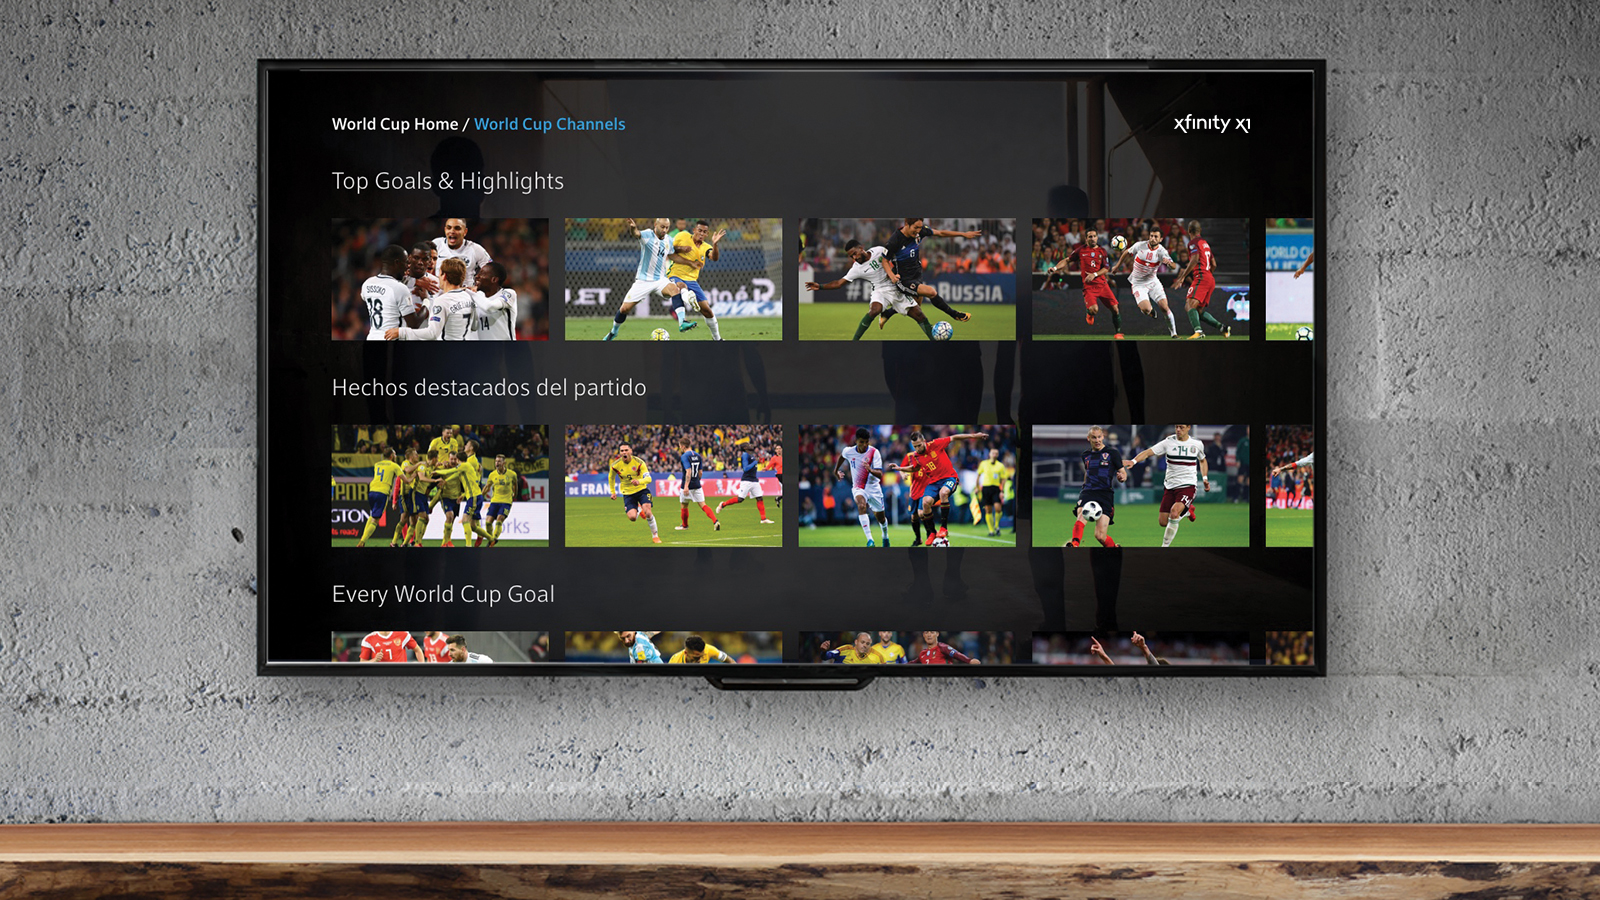 Creative_World Cup UI_World Cup Channels_16x9.jpg